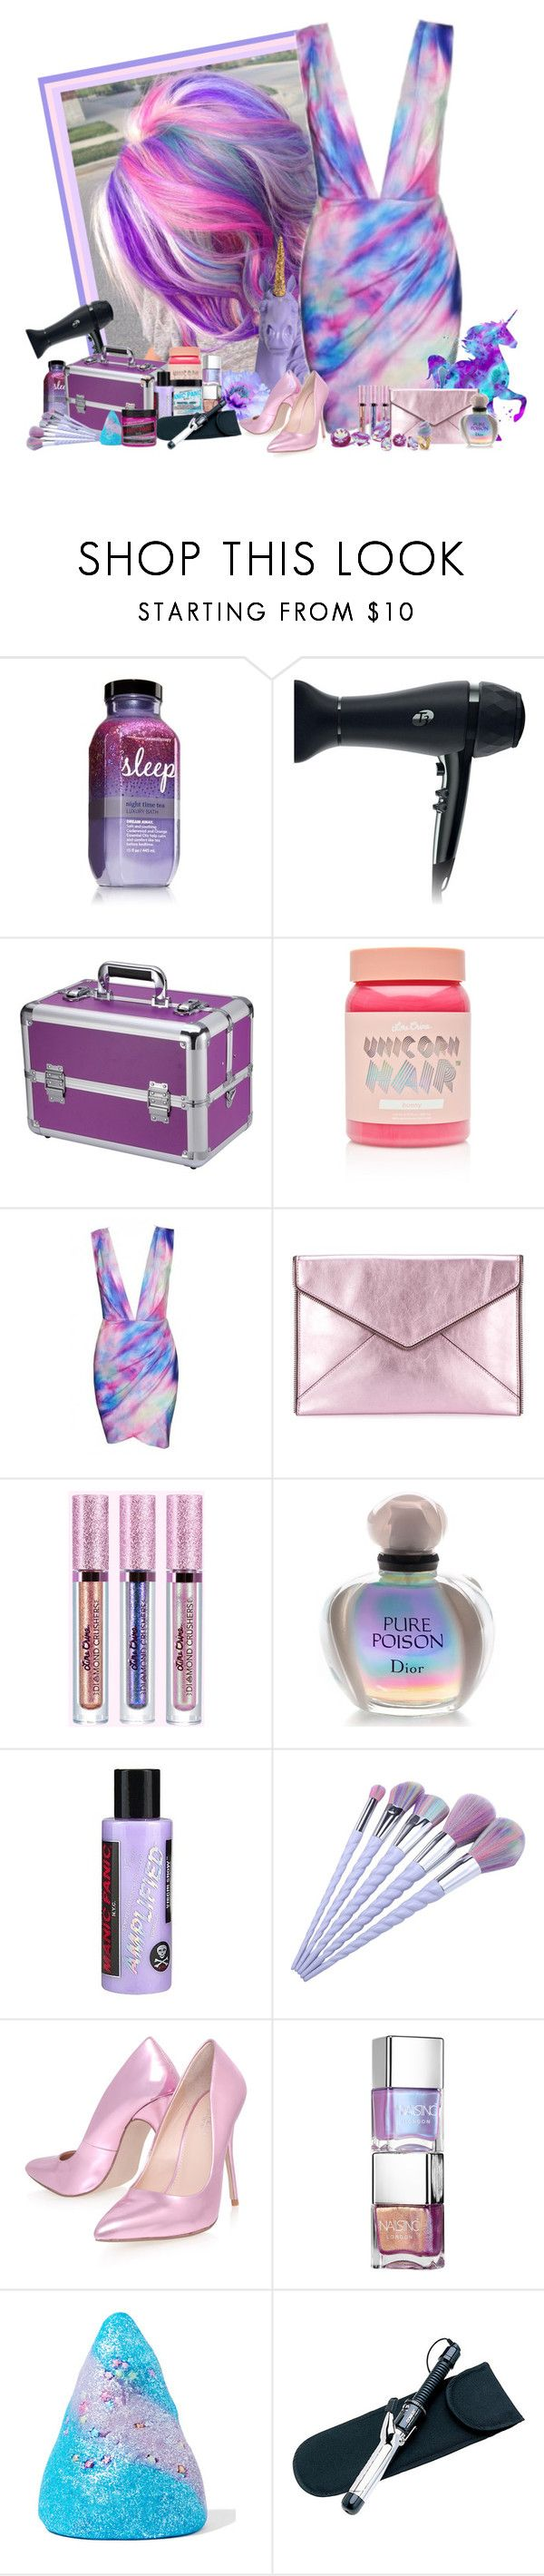 """Unicorn Hair!!!"" by frane-x ❤ liked on Polyvore featuring beauty, New Look, T3, Lime Crime, Manic Panic NYC, White Faux Taxidermy, Rebecca Minkoff, Christian Dior, Sretsis and Carvela Kurt Geiger"